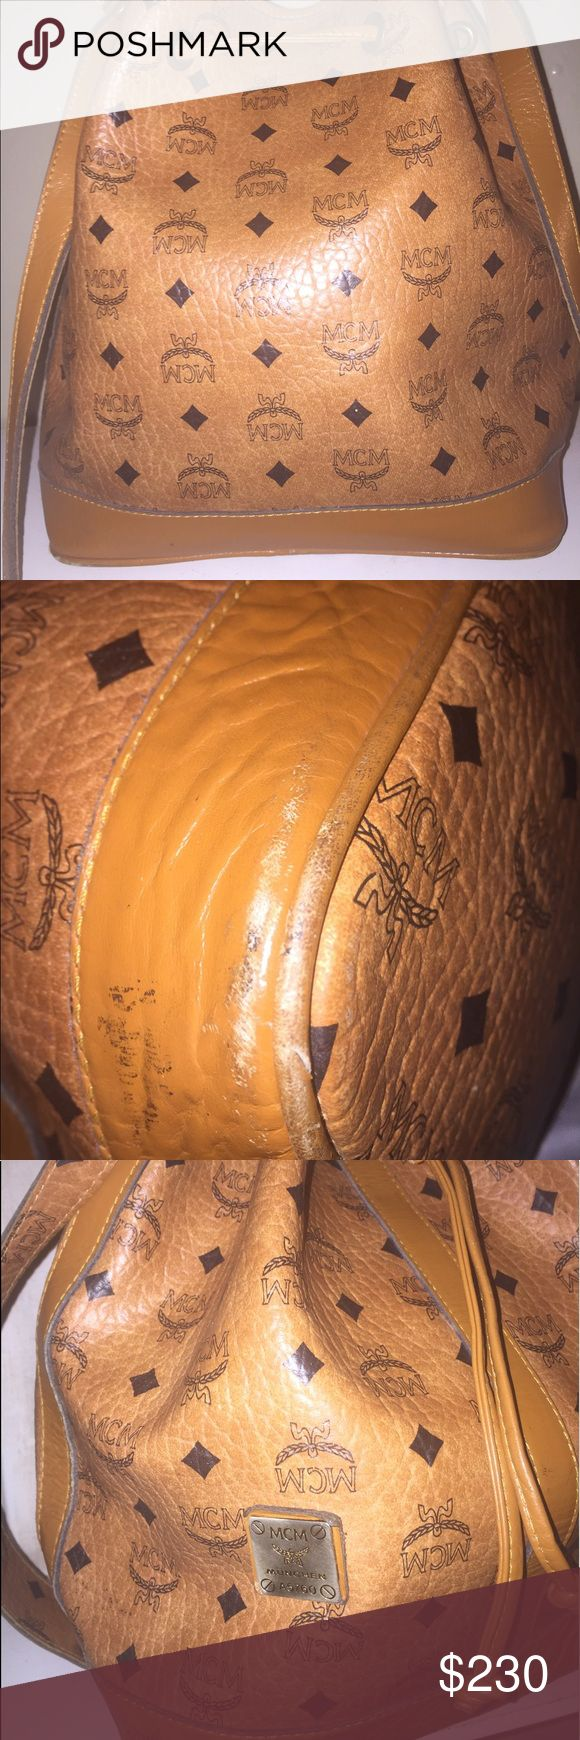 Vintage mcm bucket bag Purchase at a thrift store years ago so I'm not sure about authenticty. No tags inside,stained with pen ink so will be selling it for a decent price. Send reasonable offers MCM Bags Shoulder Bags